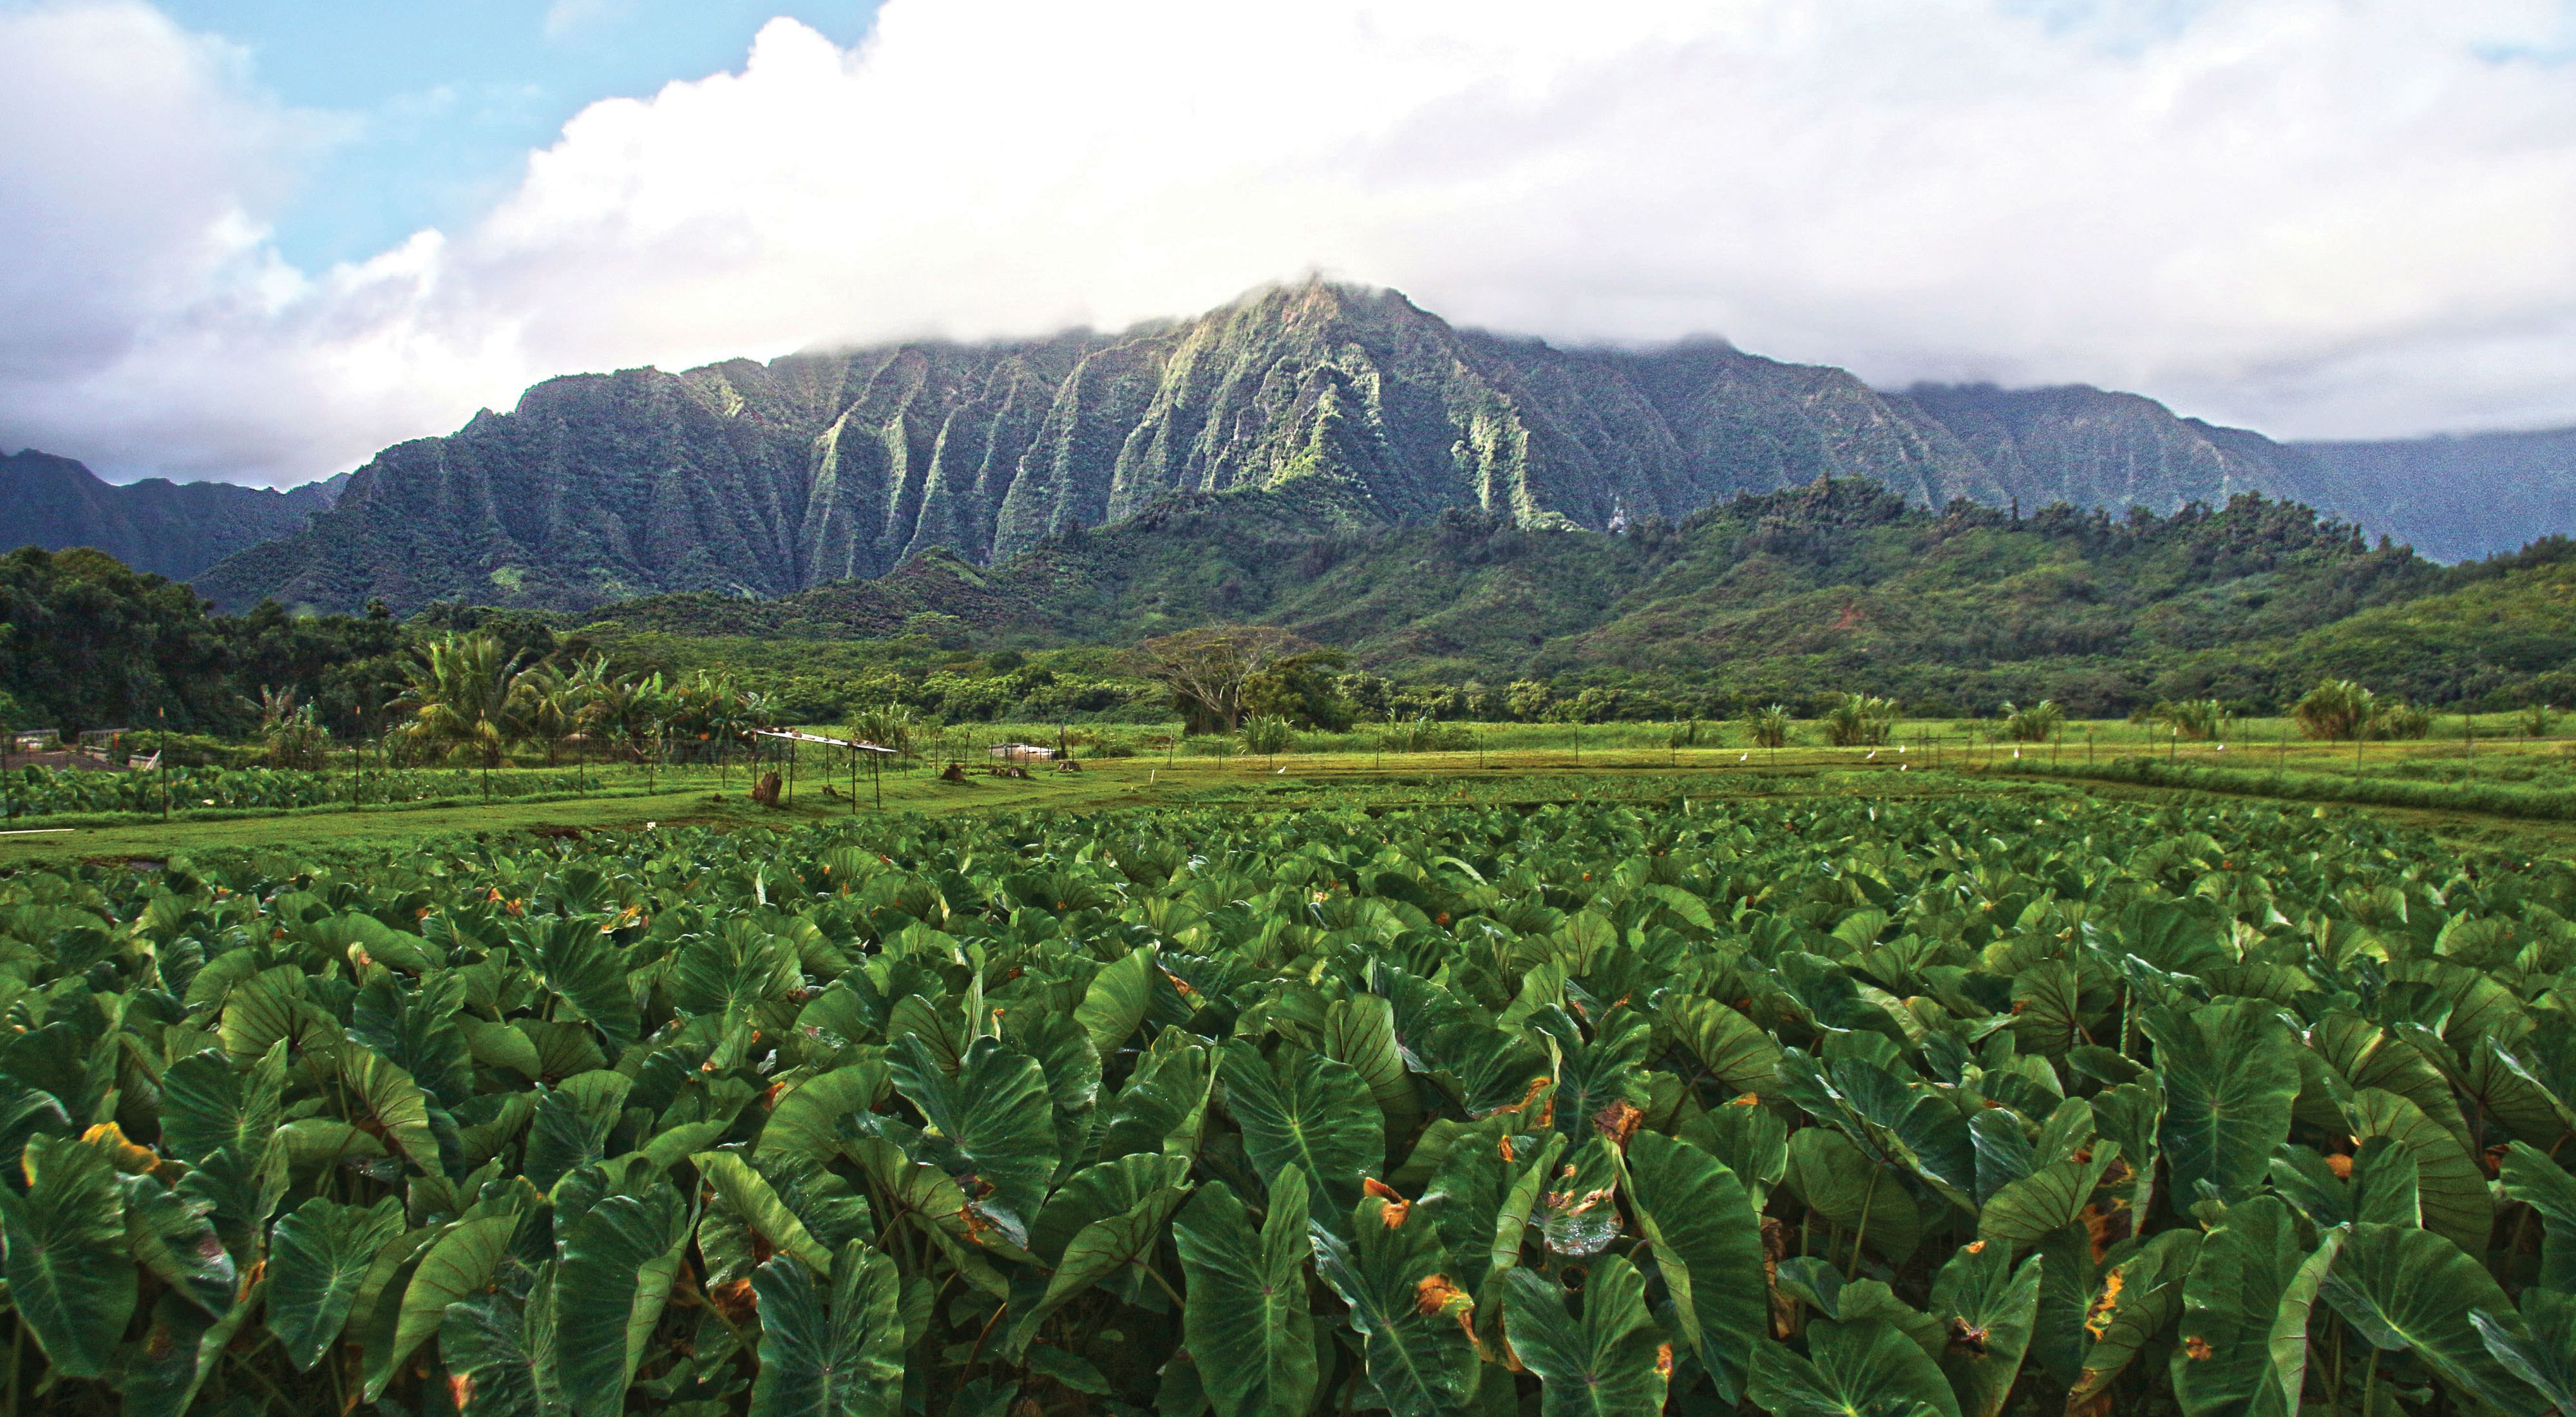 Replanted taro field in He'eia, Windward O'ahu.